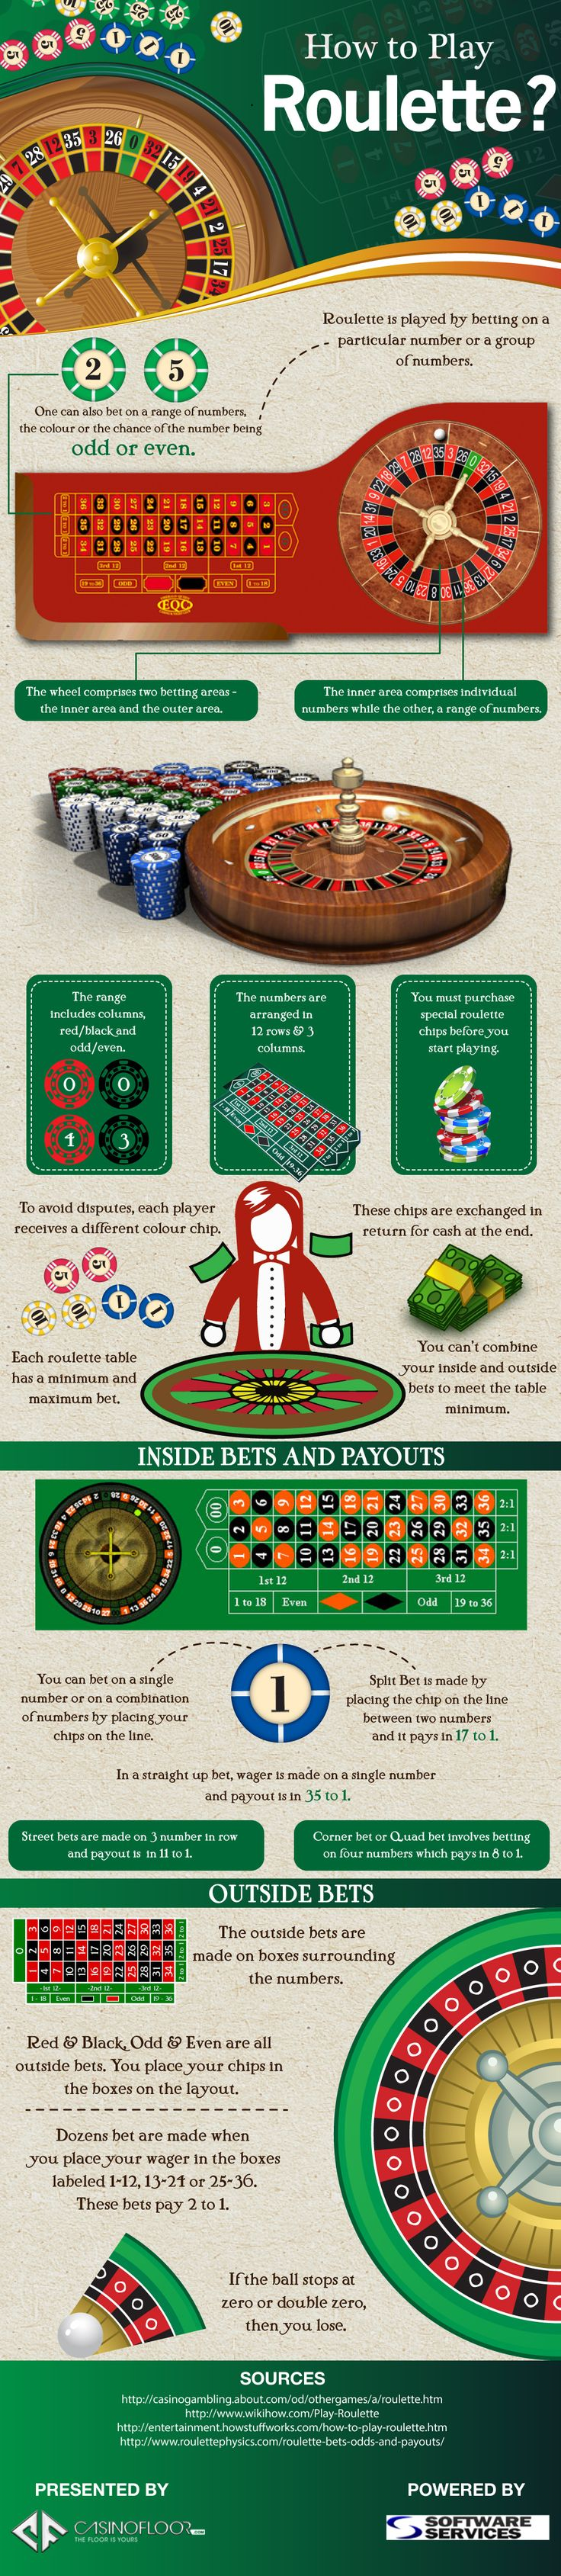 "This Infographic titled ""How to Play Roulette,"" has been created by CasinoFloor.com with a big idea, giving a detailed information about the way in which the game is played. This Infographic will be useful in understanding a great deal about this wheel spinning game and its playing procedure."